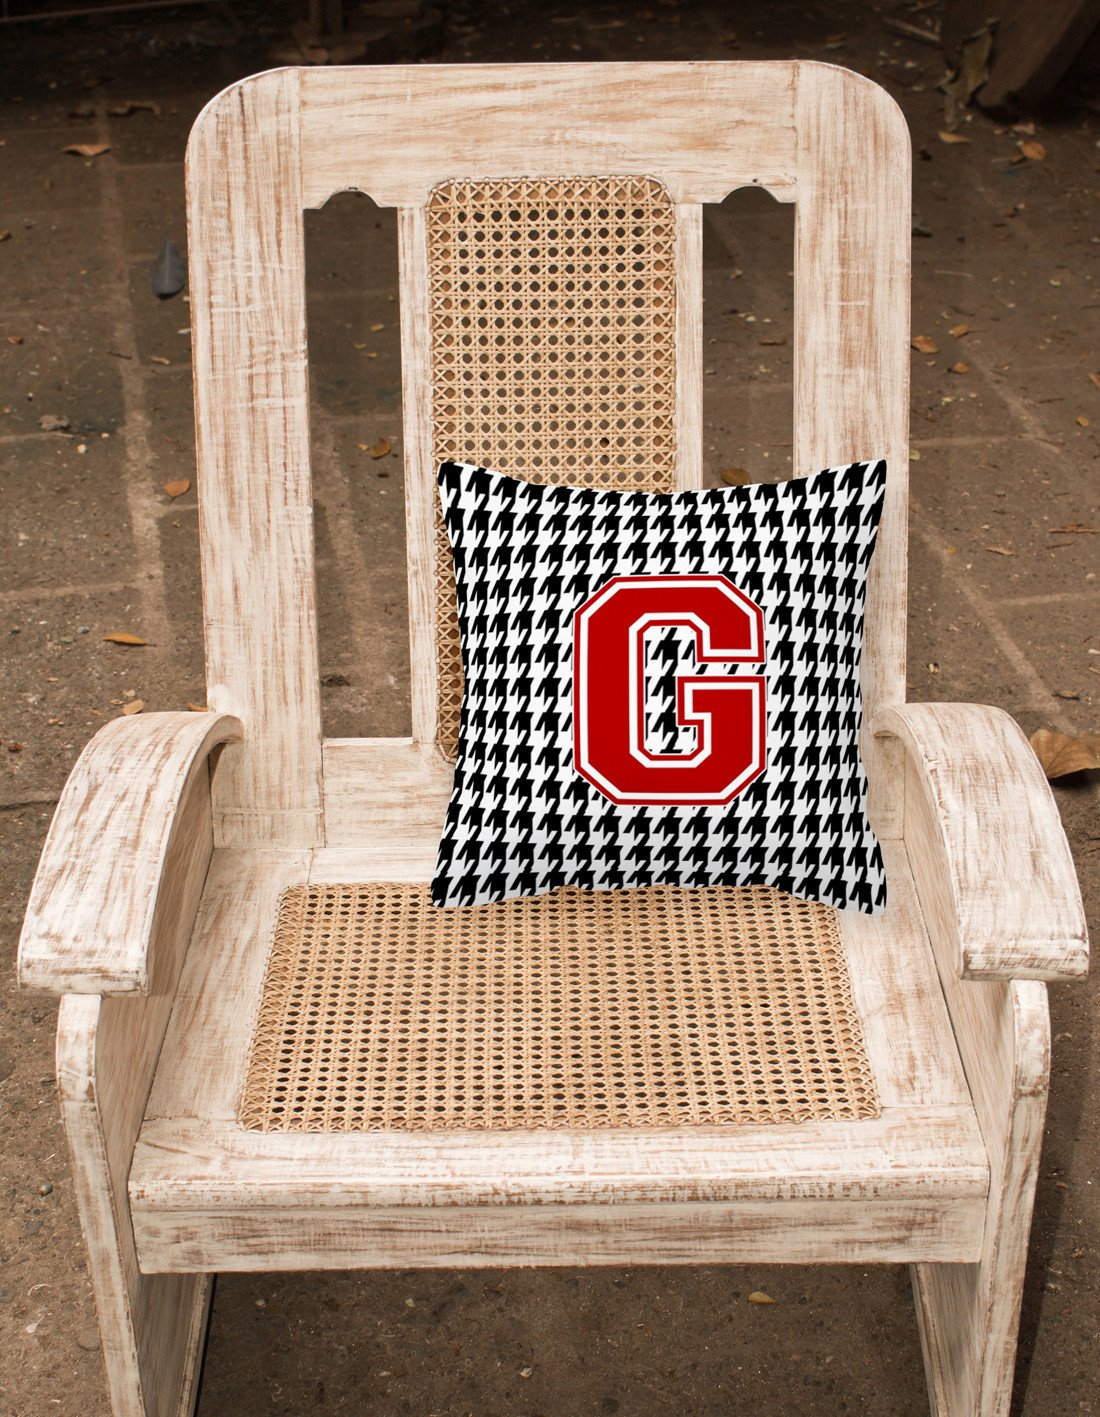 Monogram - Initial G Houndstooth Decorative   Canvas Fabric Pillow CJ1021 by Caroline's Treasures